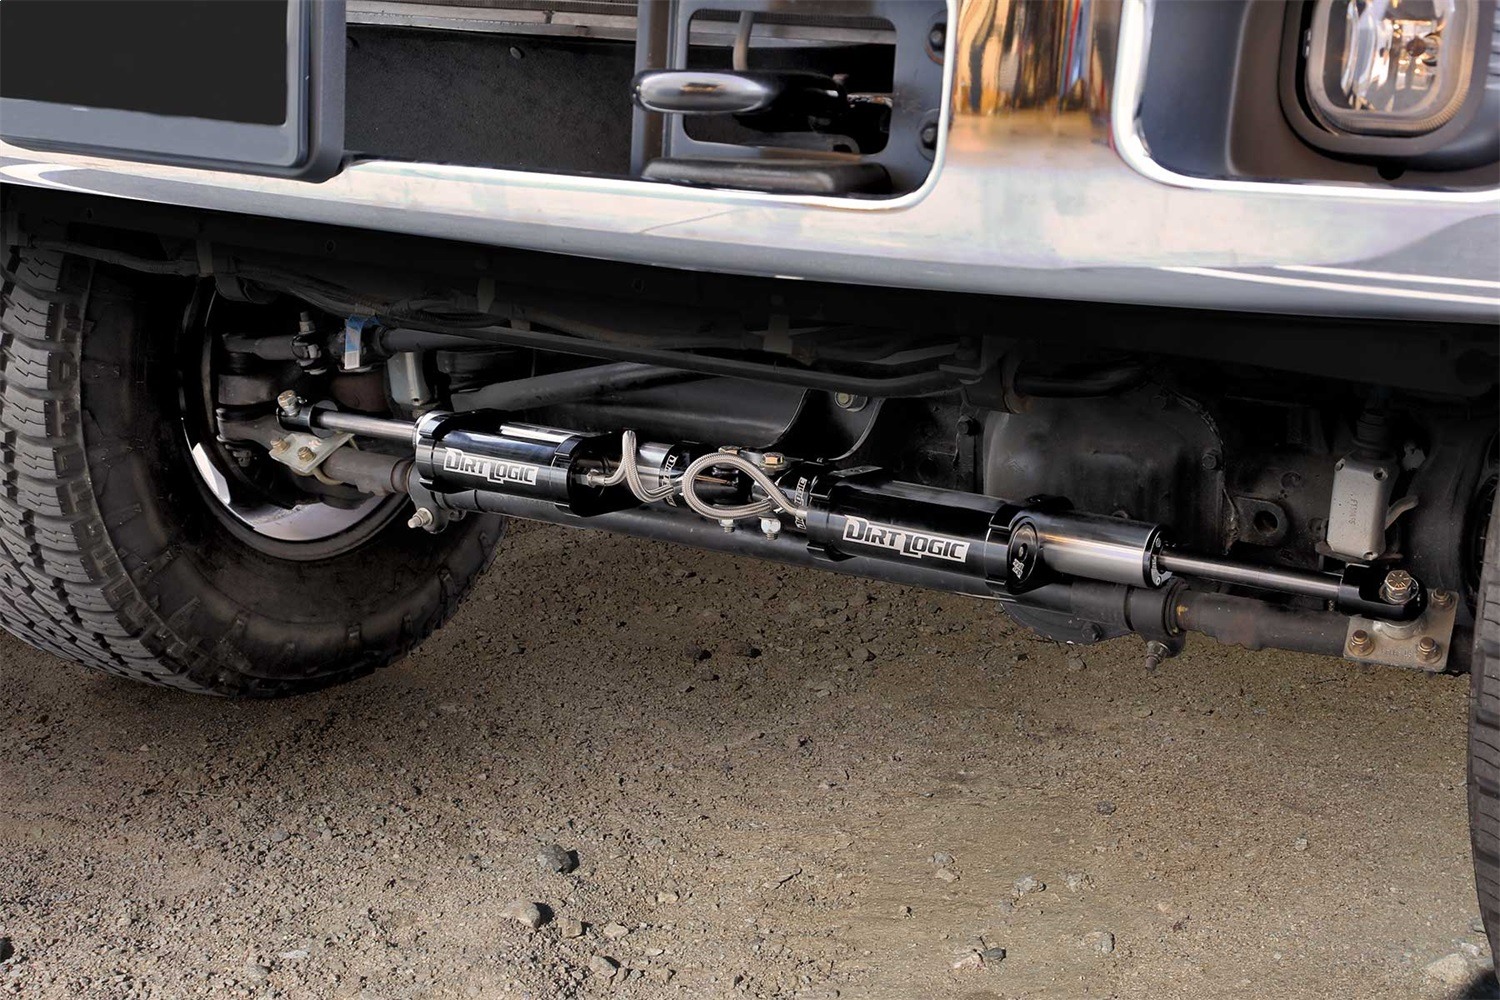 Fabtech FTS221162 Dual Dirt Logic 2.25 Stainless Steel Steering Stabilizer Kit